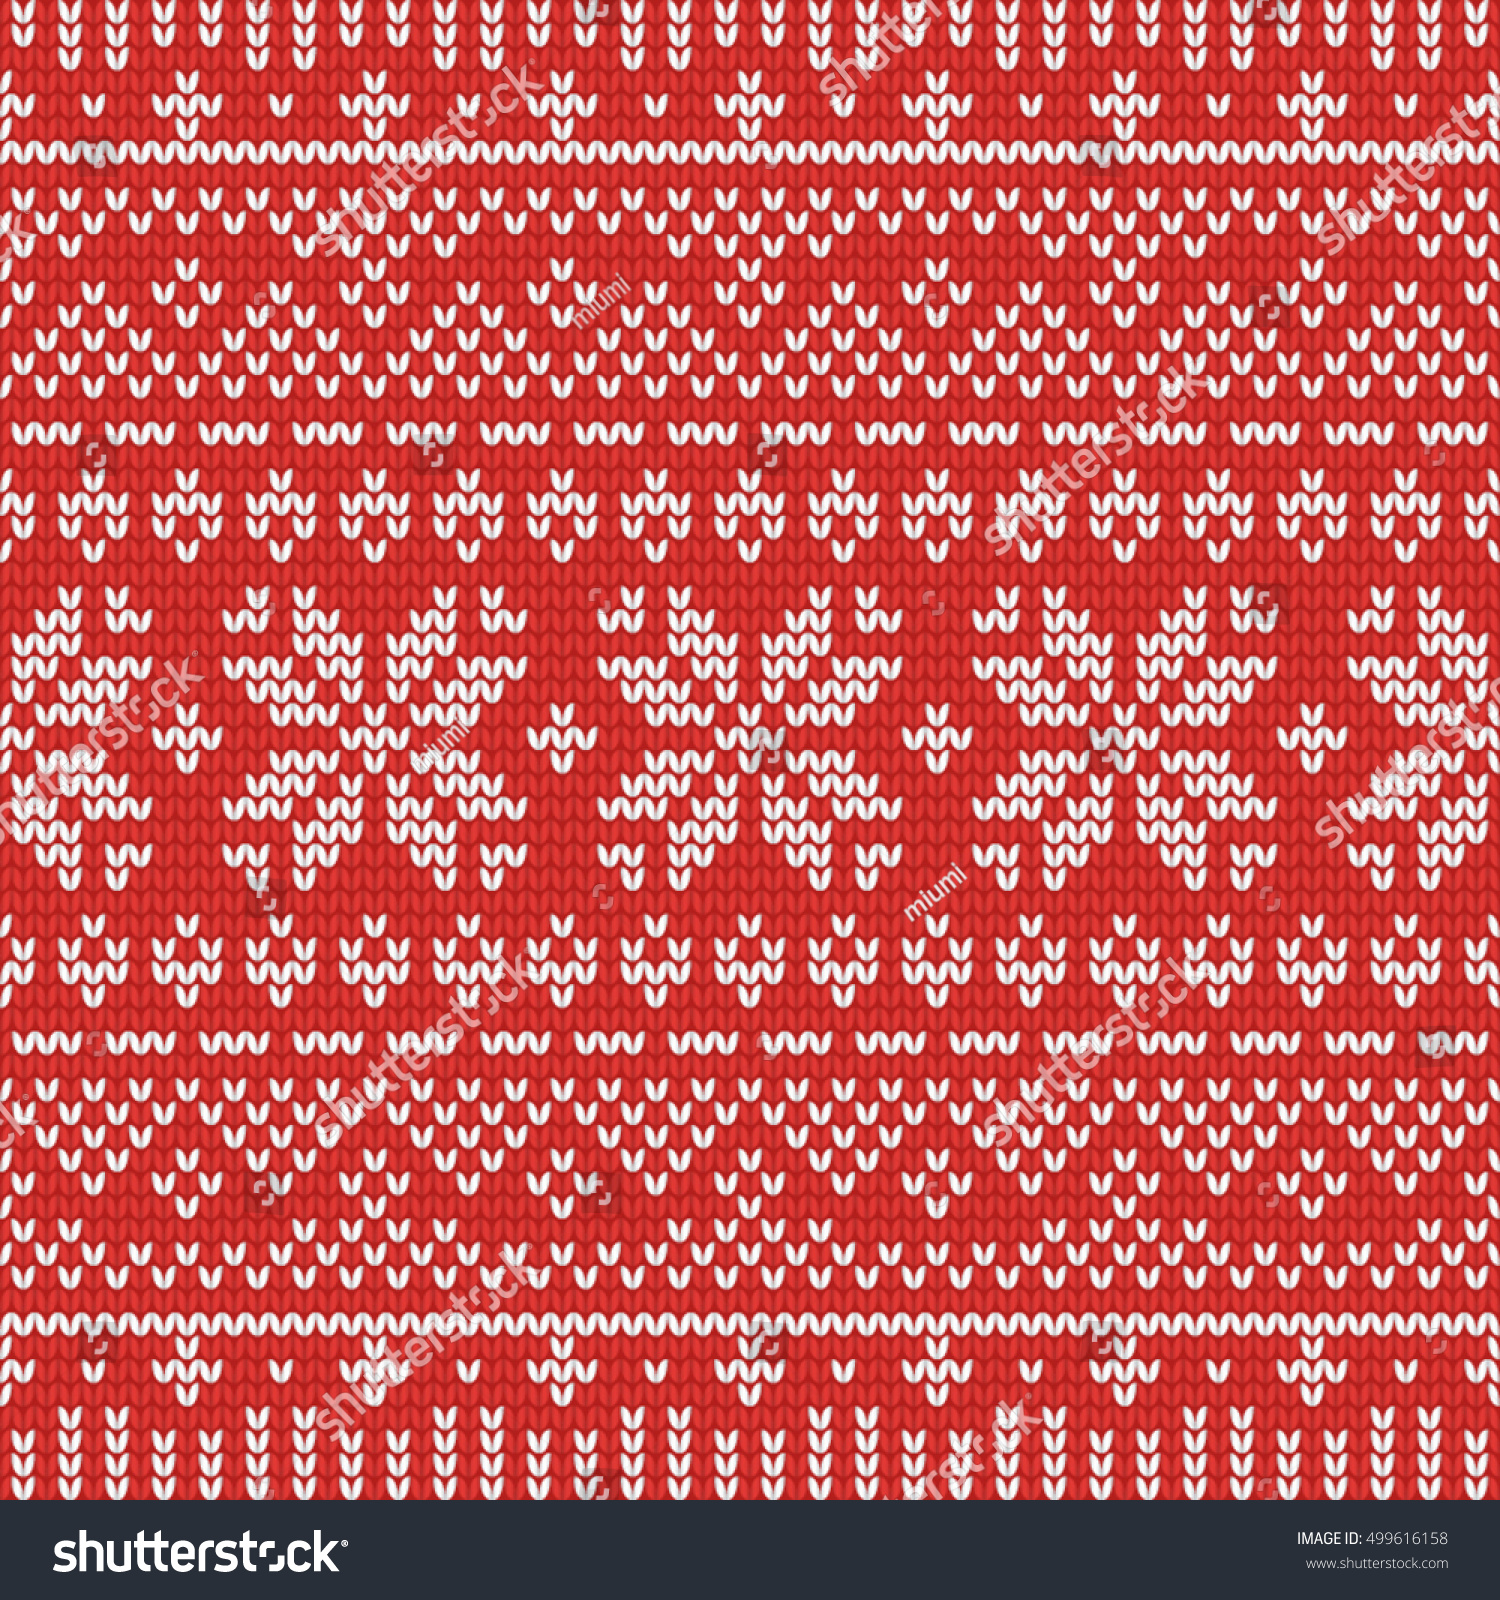 Knitting Pattern Paper : Christmas Knitting Seamless Pattern With . Perfect For Wallpaper, Wrapping Pa...